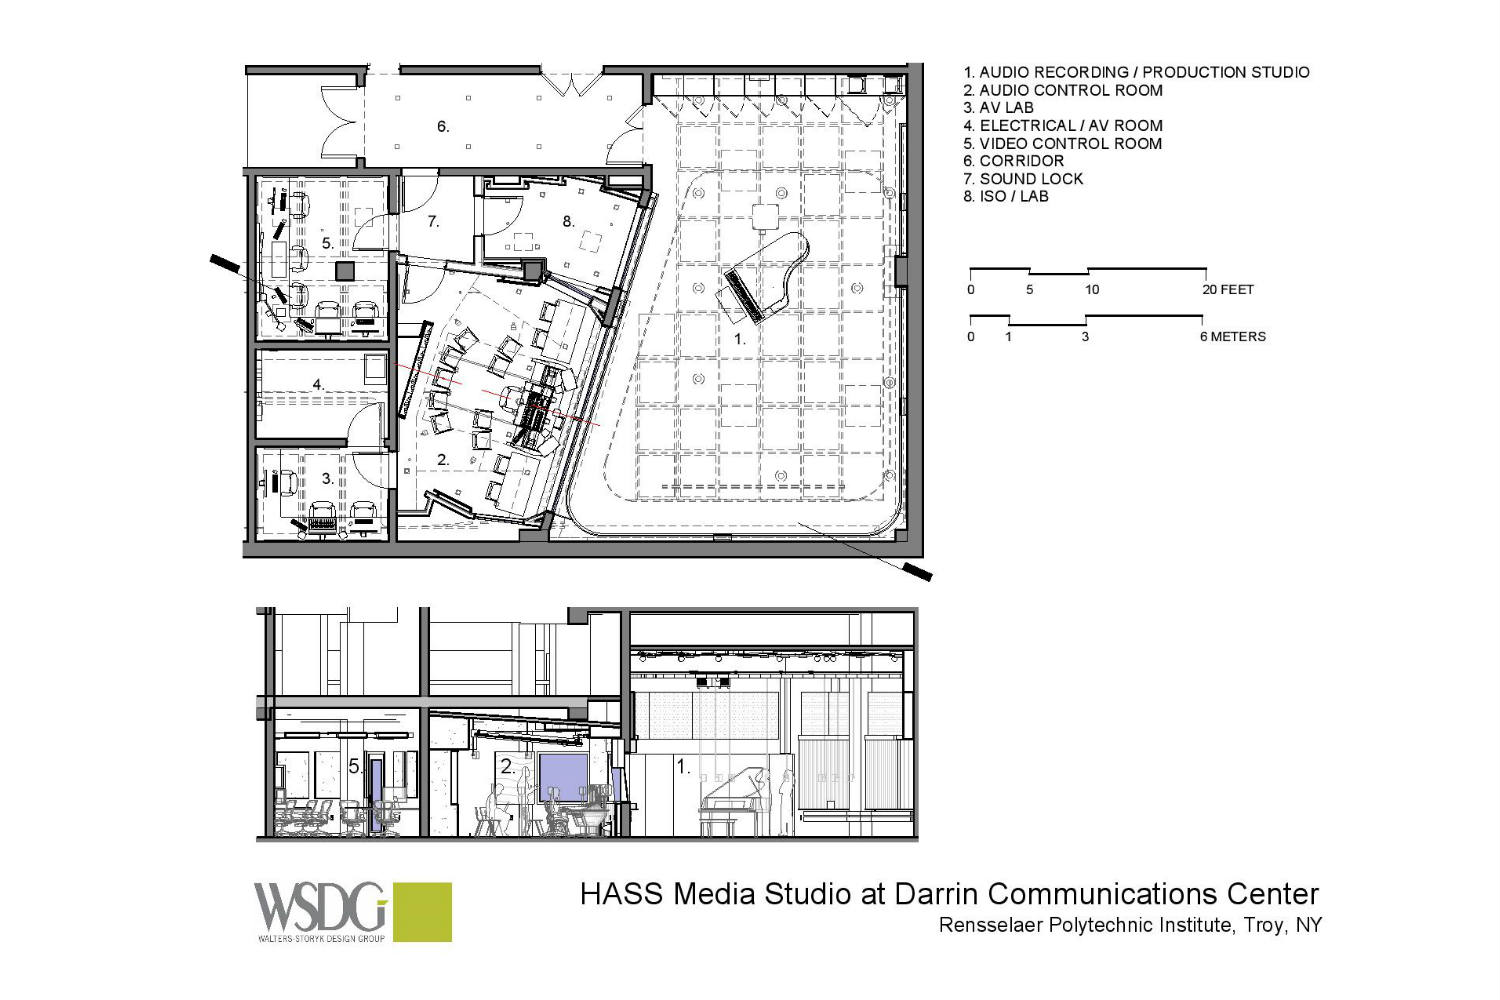 Rensselaer Polytechnic Institute (RPI) brand new state-of-the-art audio production facilities, designed by WSDG - Presentation Drawings 2